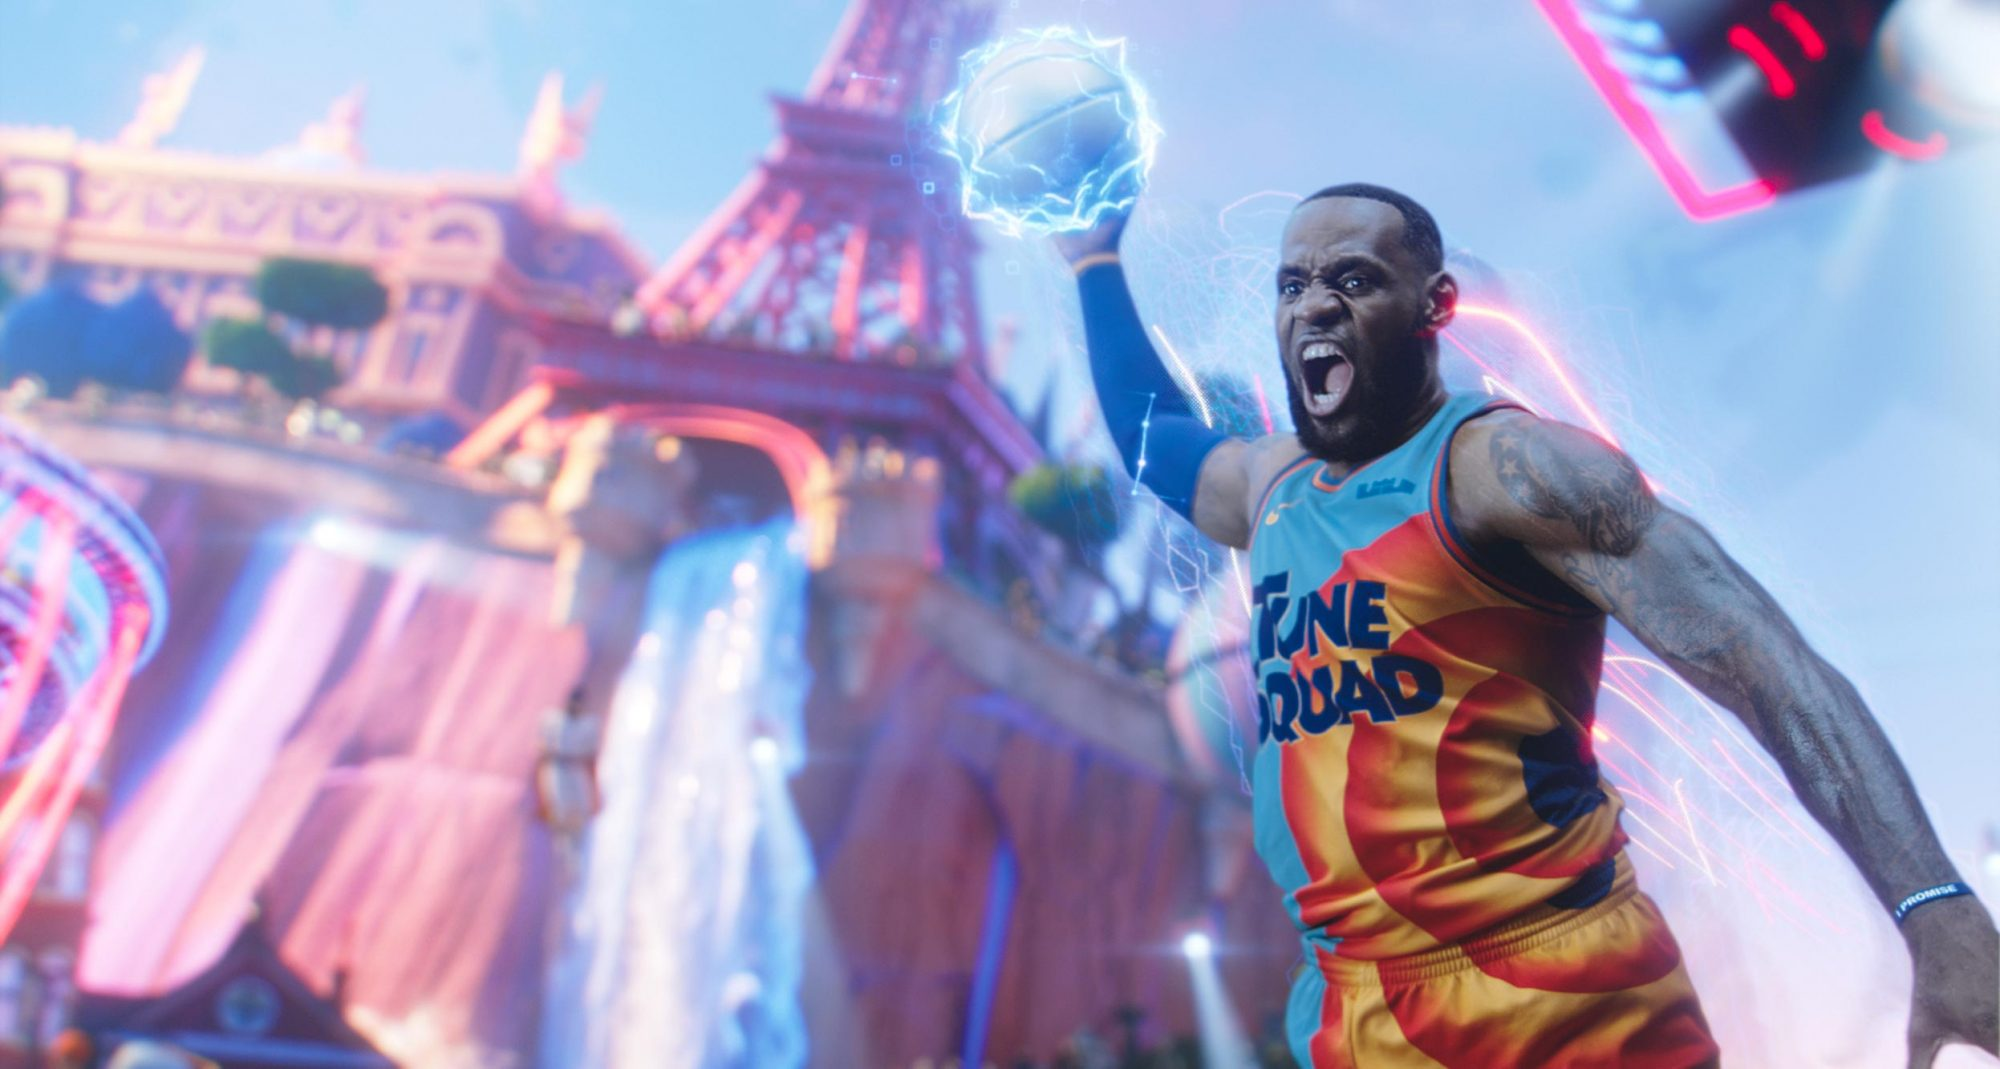 Welcome to the first Space Jam: A New Legacy trailer